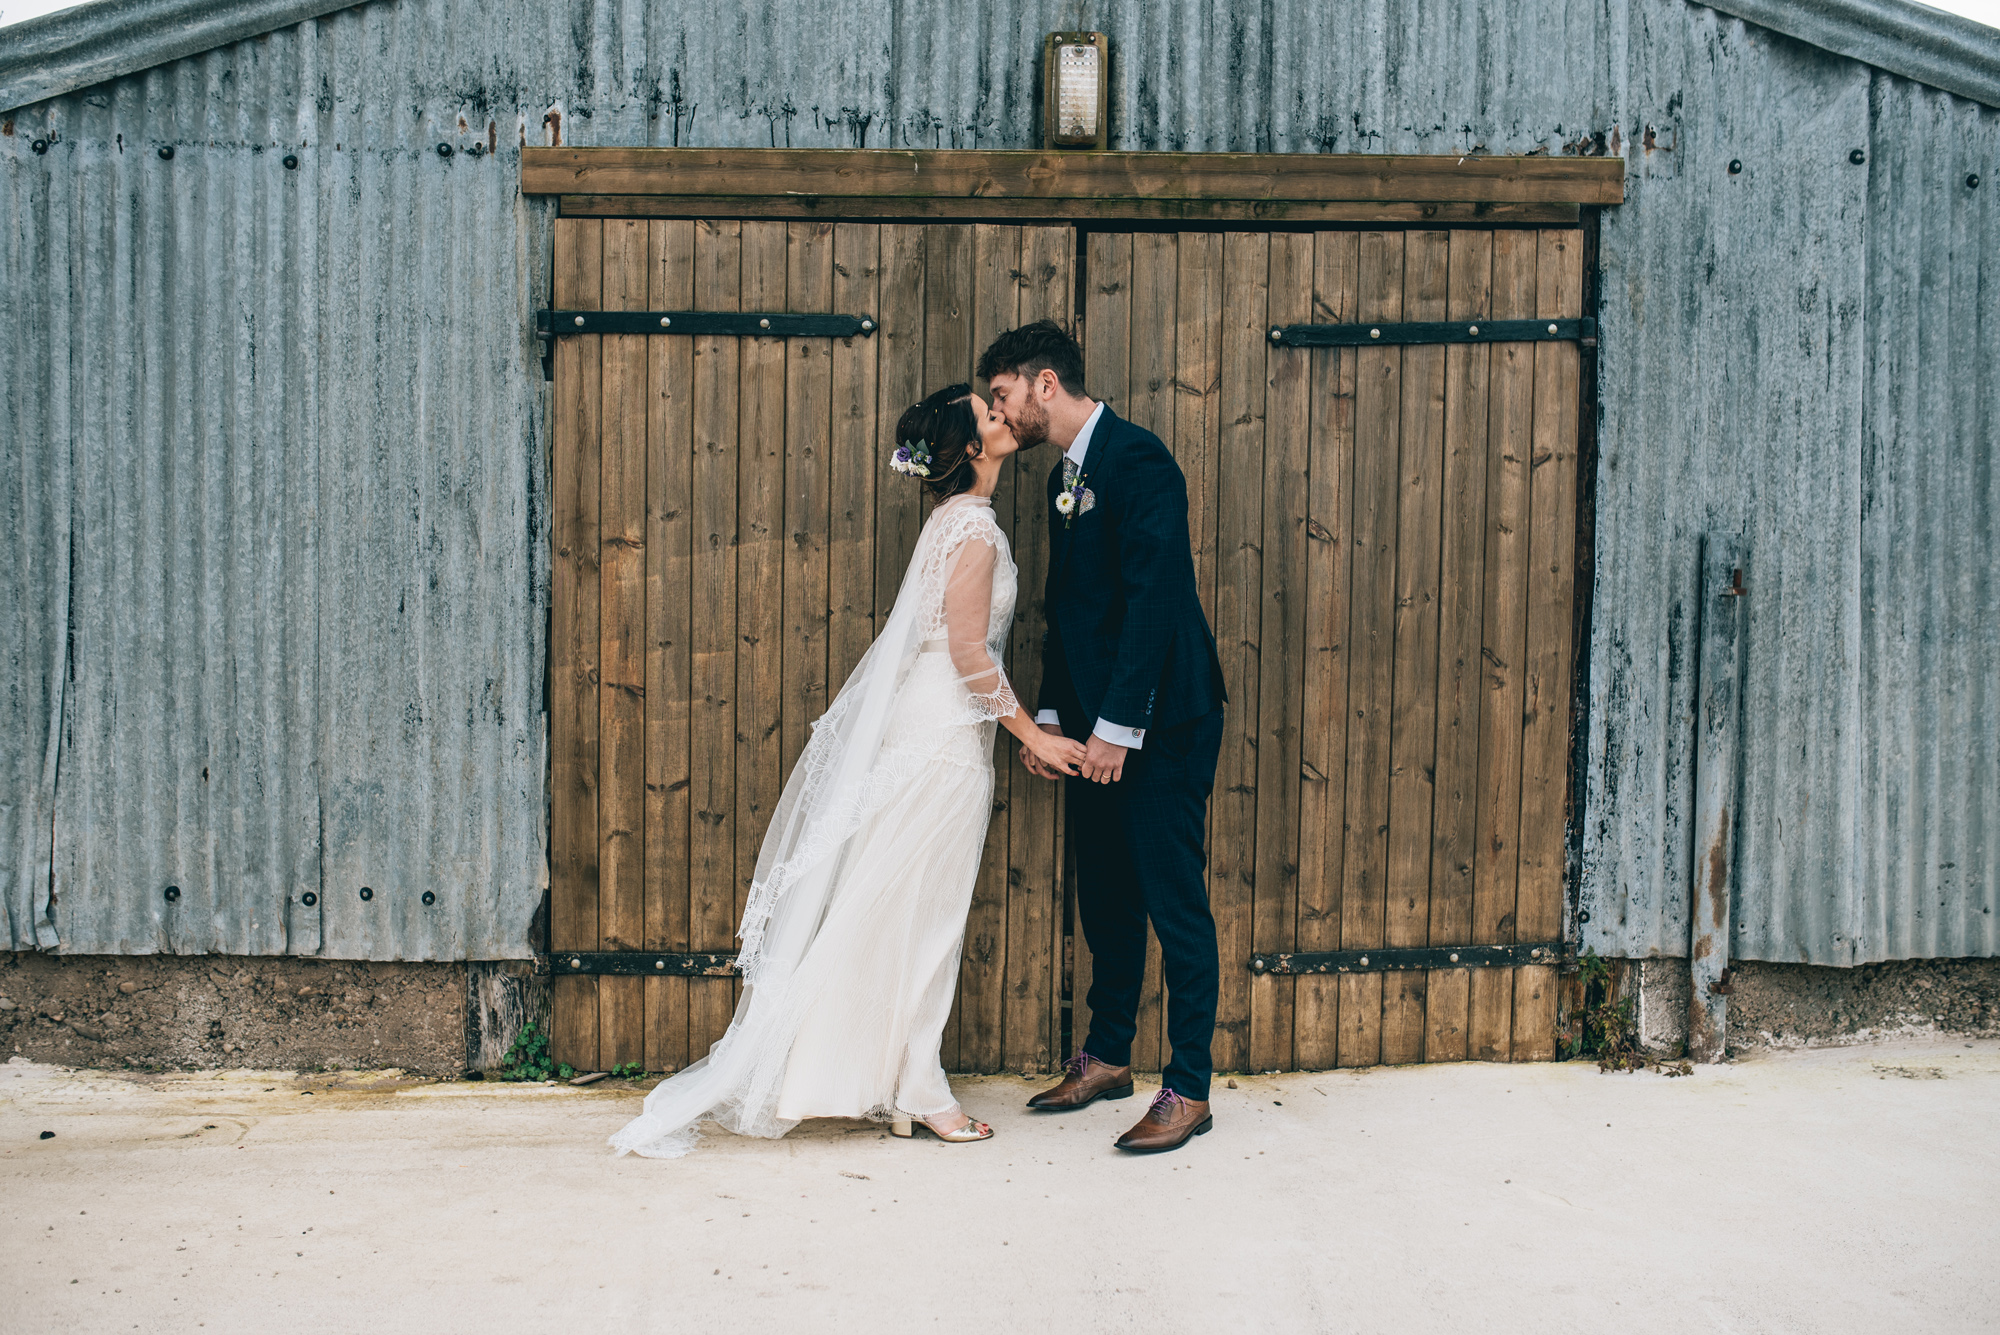 Kate-Beaumont-Sheffield-Lucy-Bohemian-Lace-Dress-Barn-Wedding-Cumbria-21.jpg